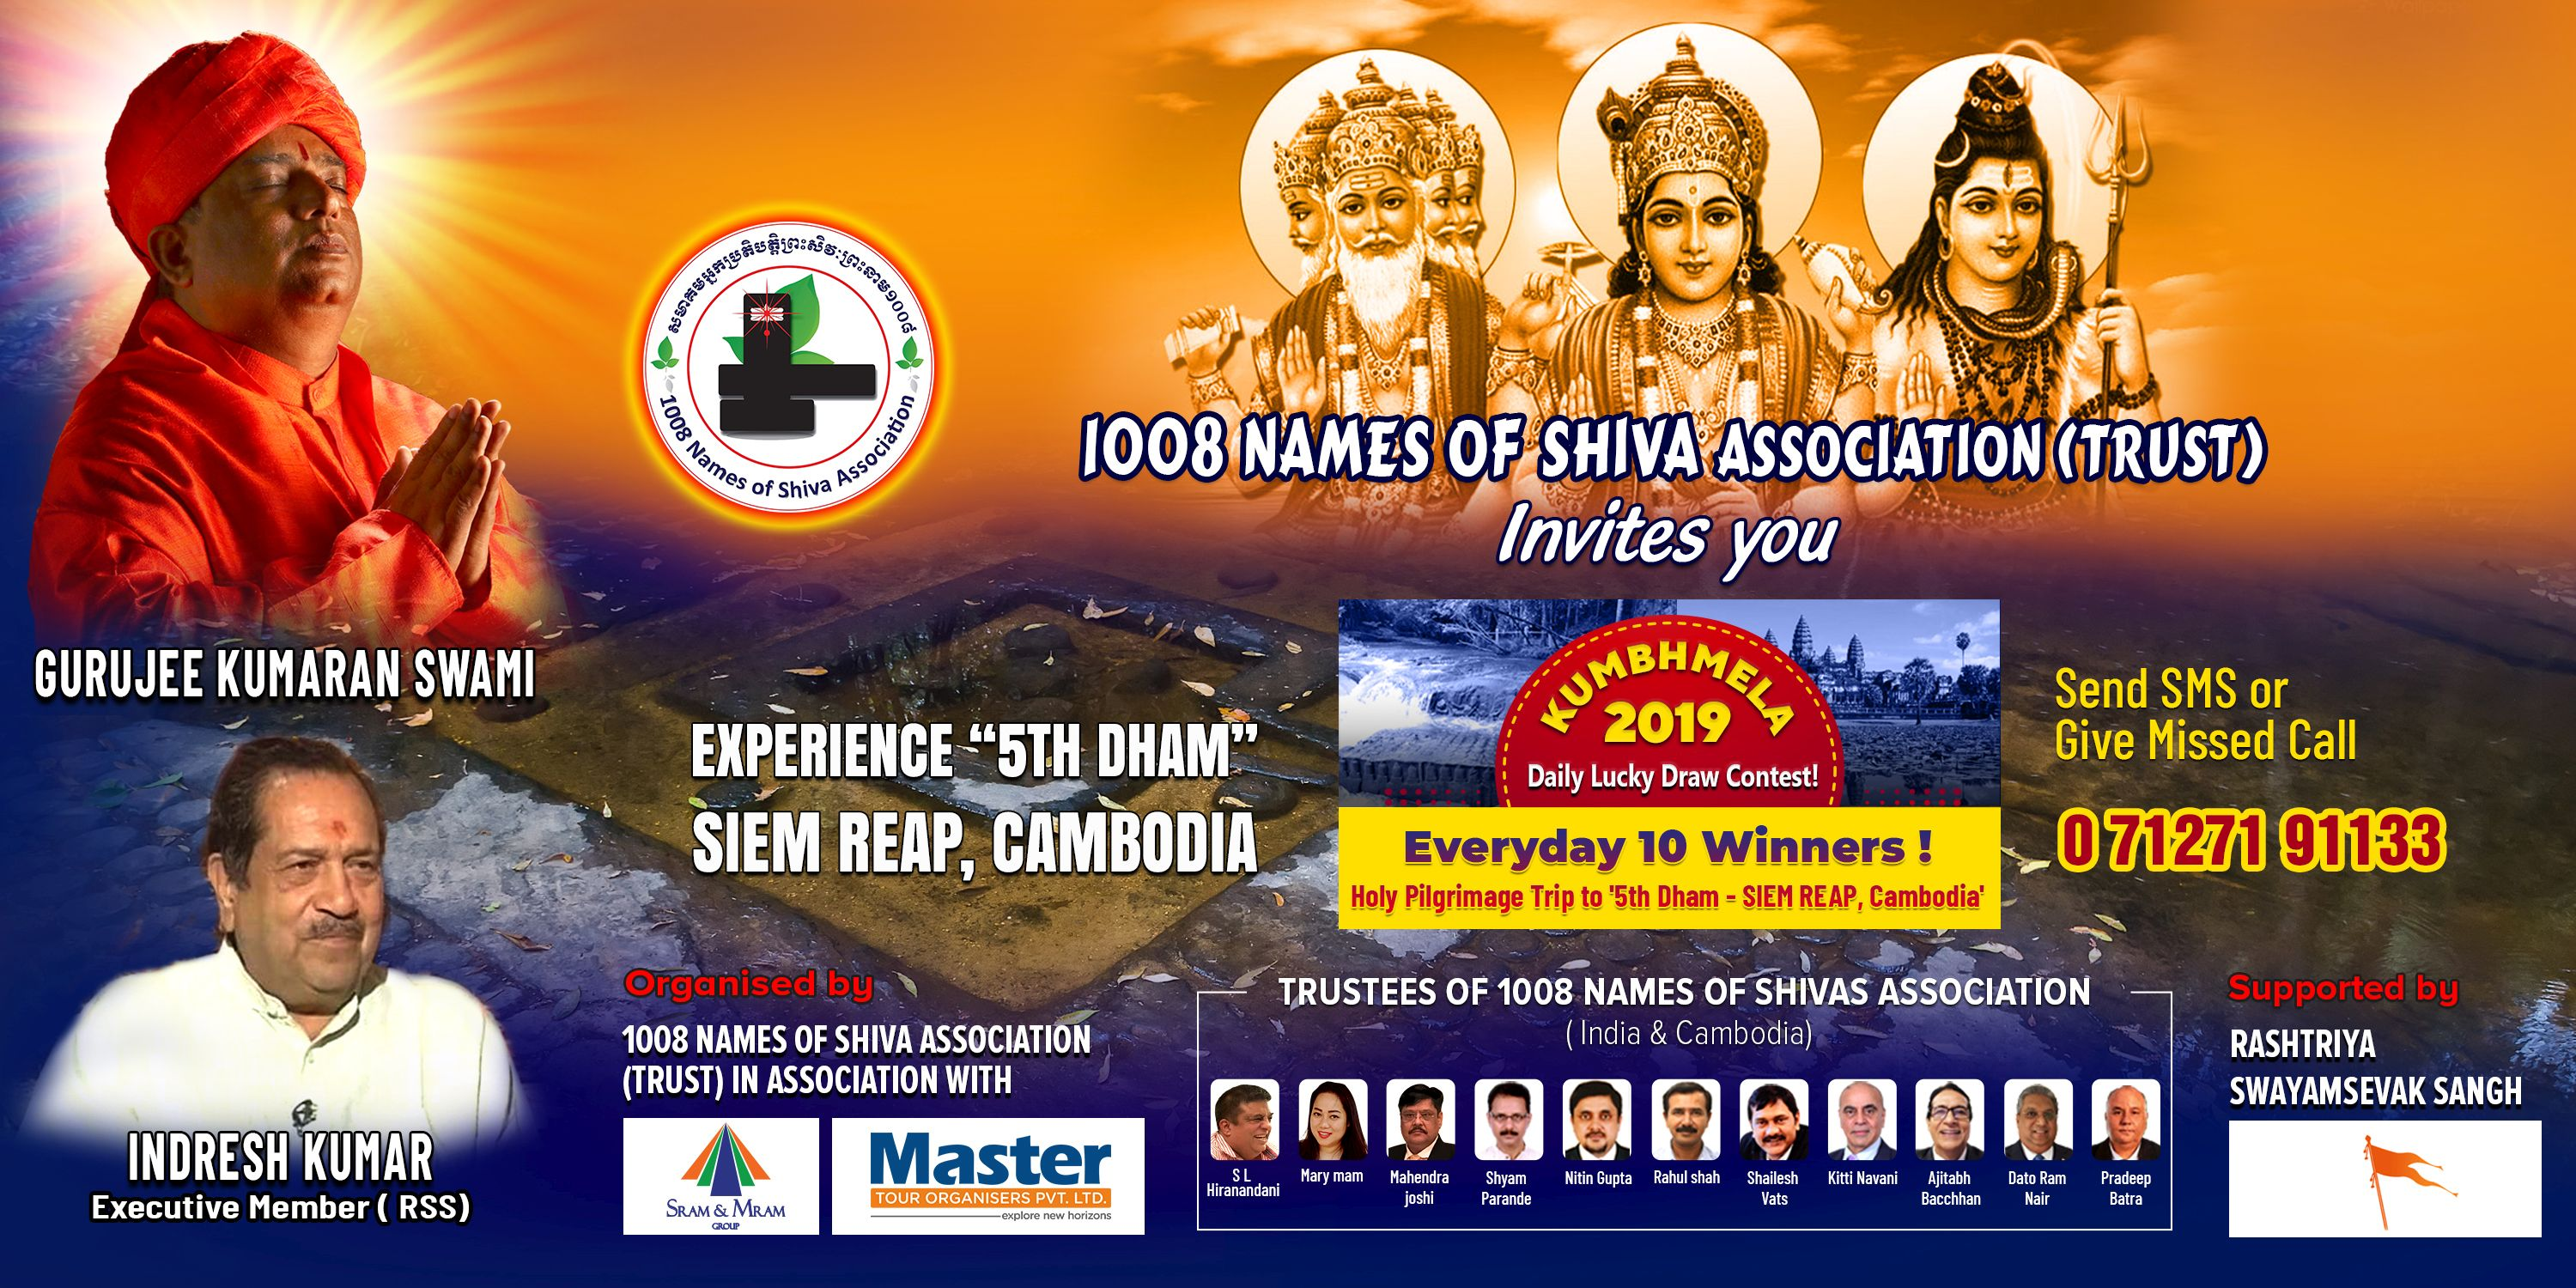 Jeevanacharya invitation to 5th Dham Siem Reap Cambodia